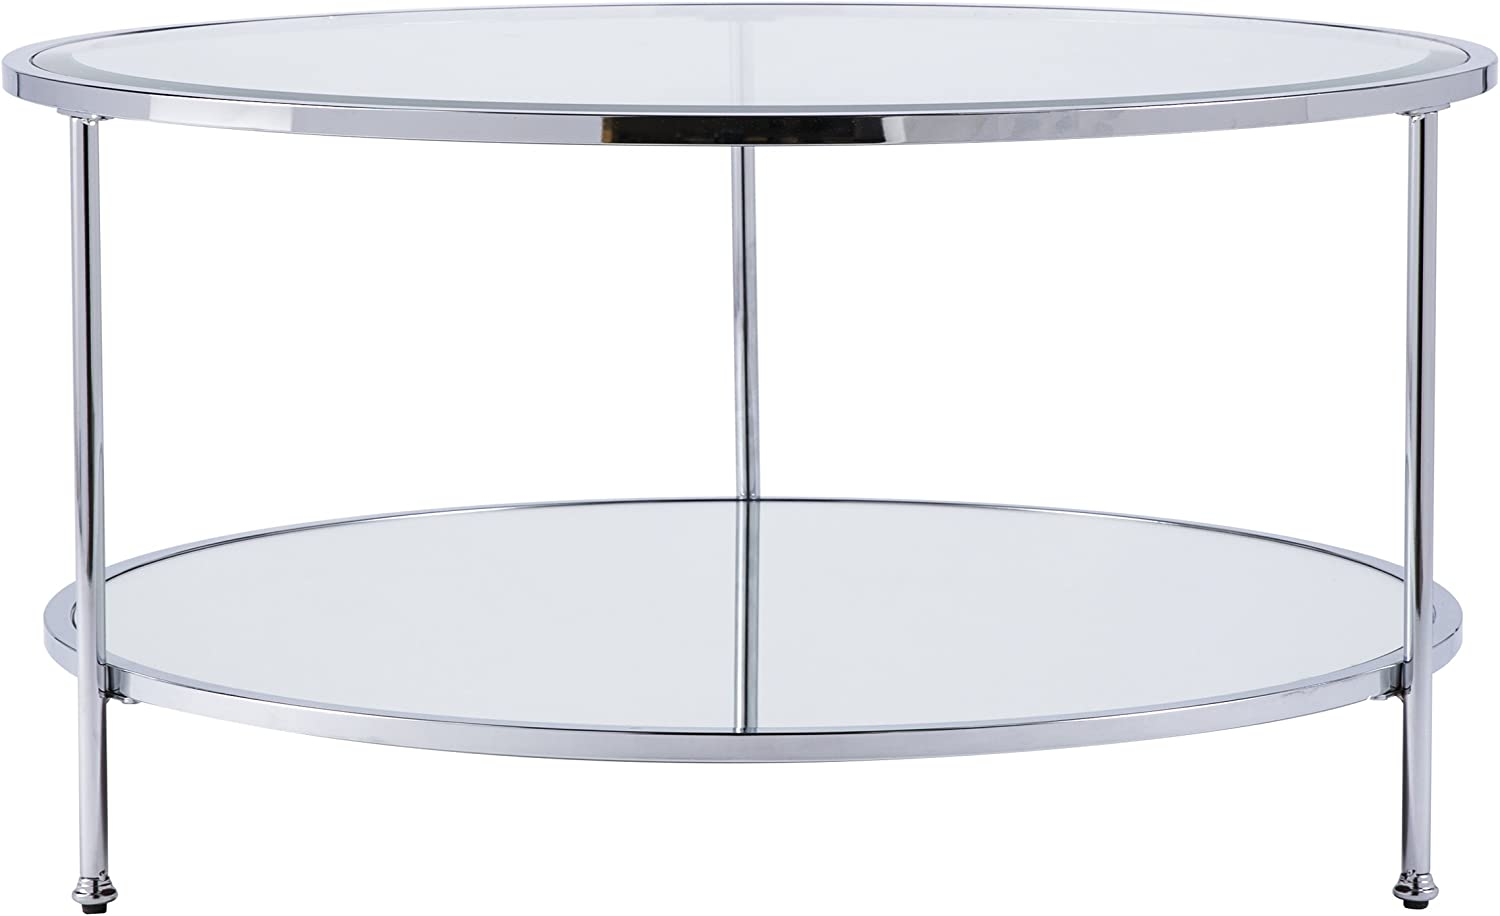 Furniture HotSpot – Round Metal and Glass Coffee Table – Chrome - 33.75